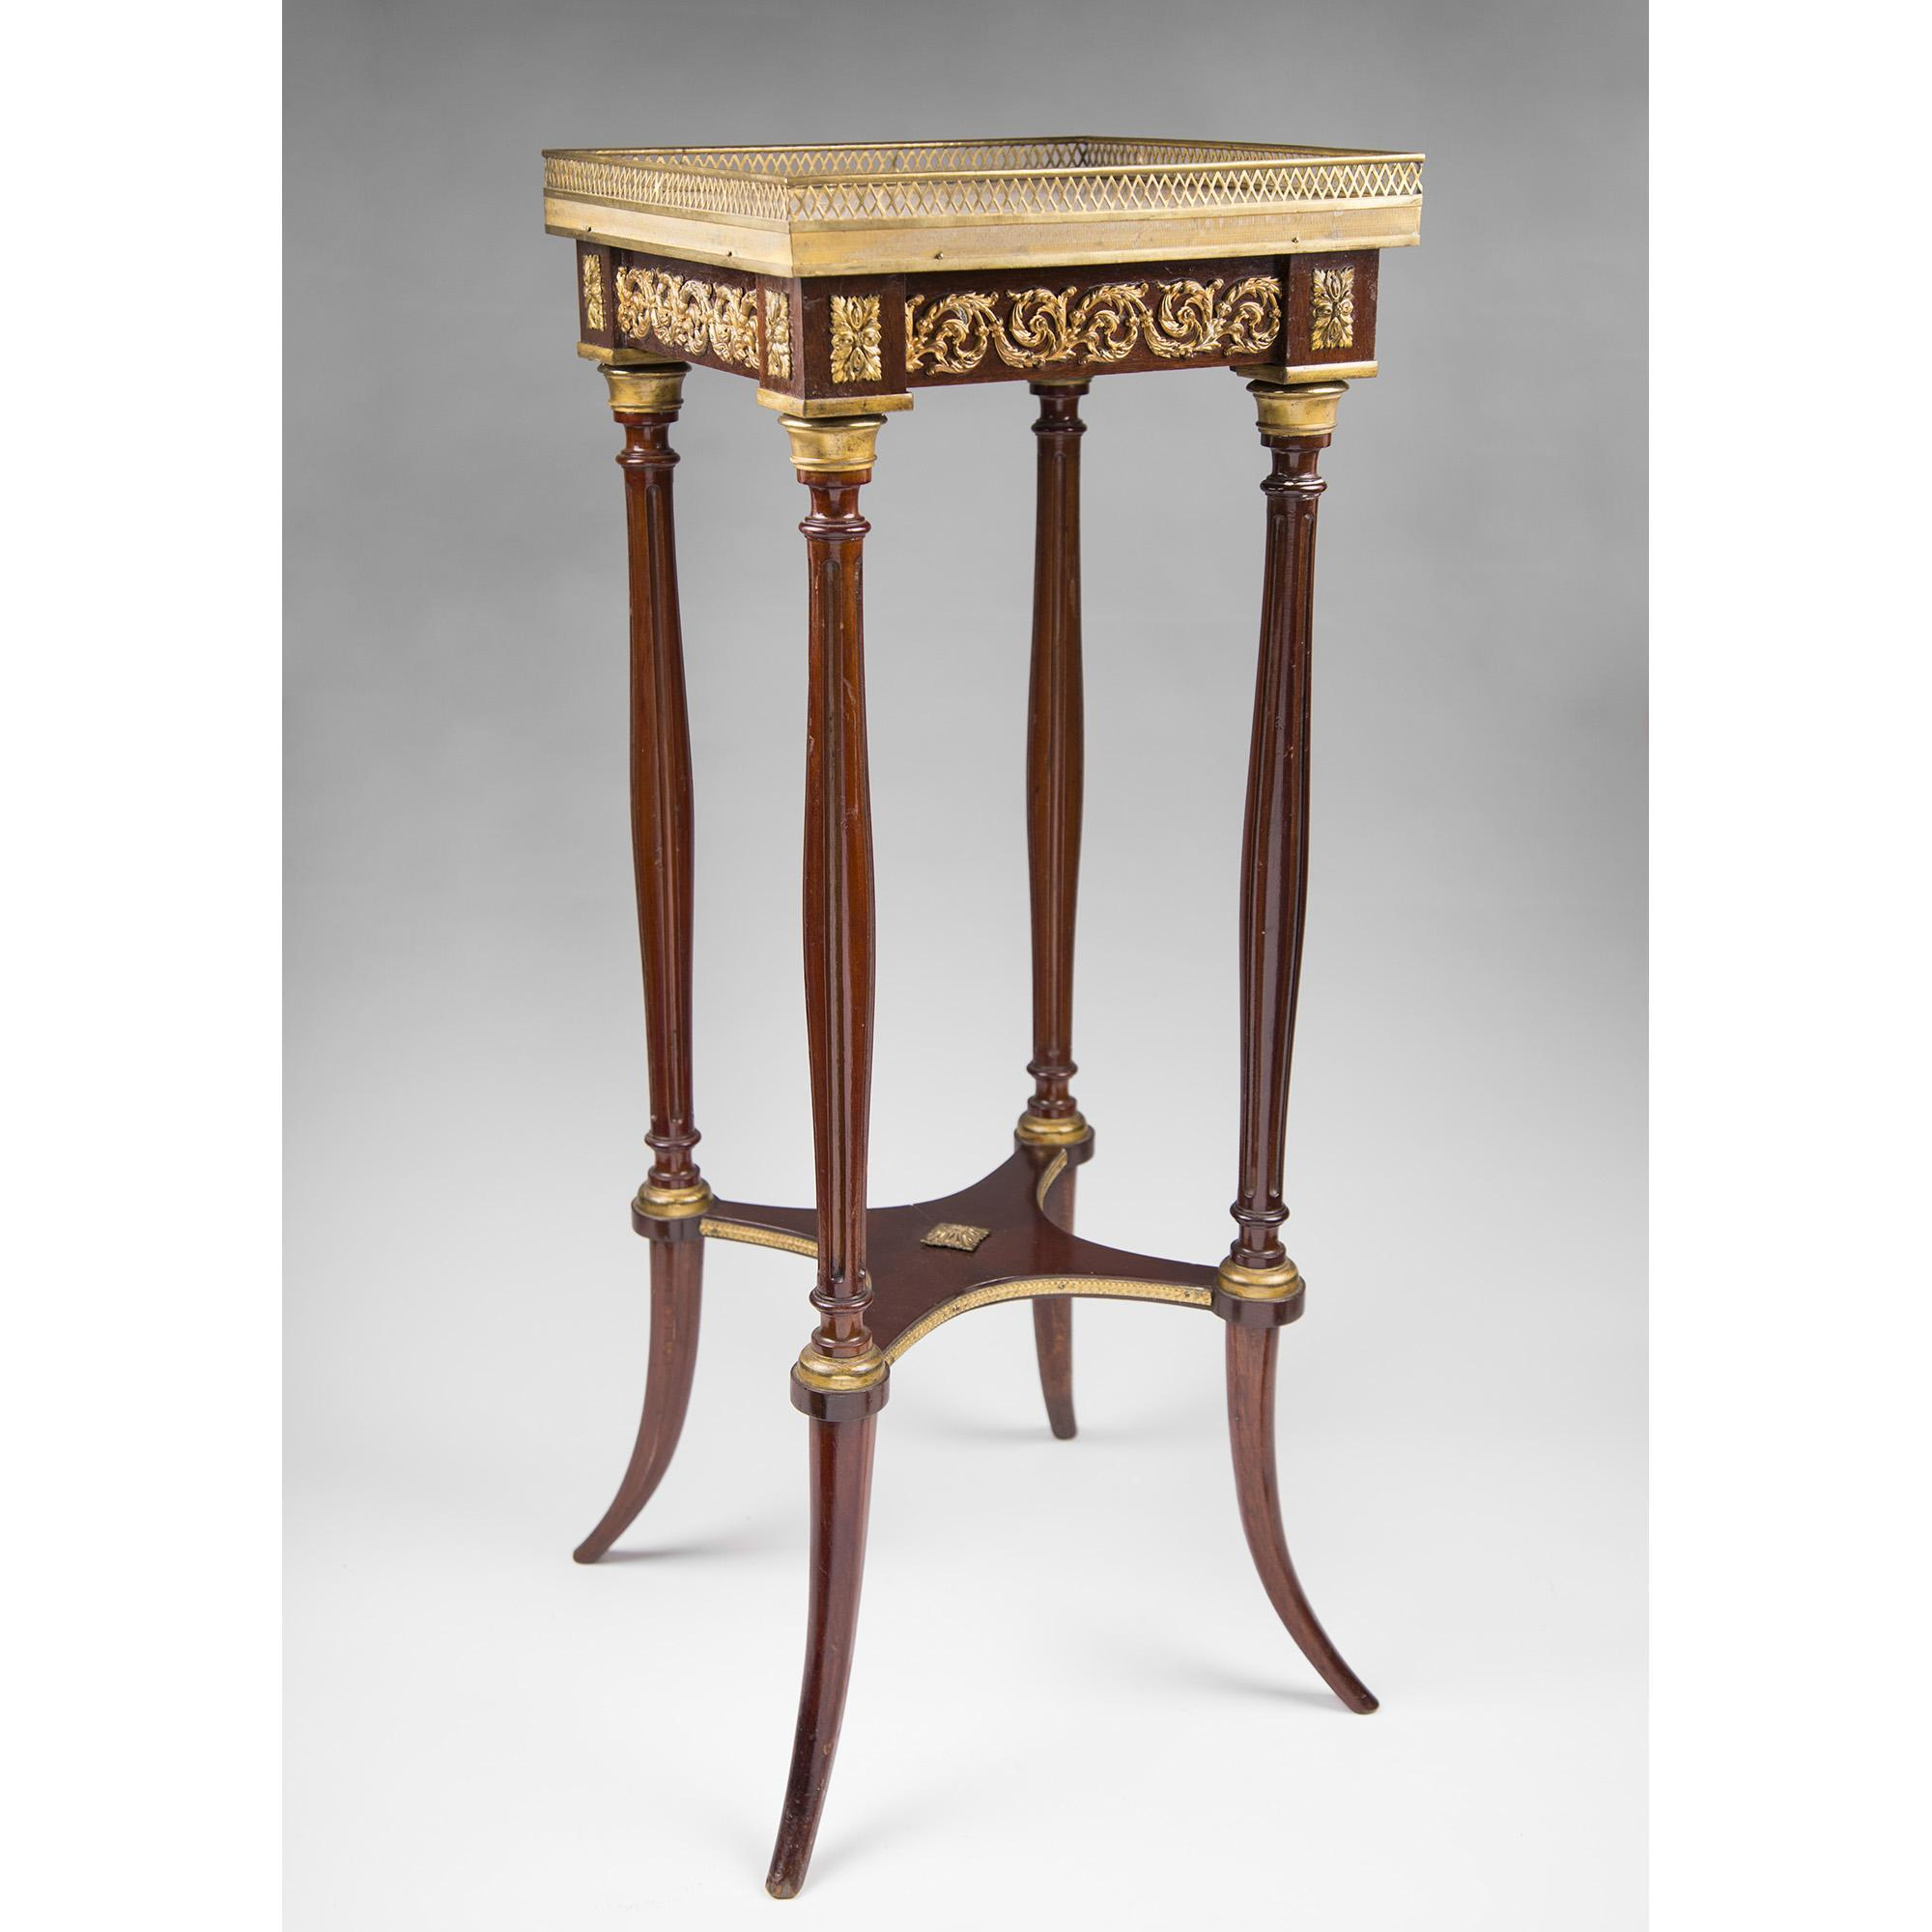 19th c louis xvi style ormolu side table or fern stand from piatik on ruby lane. Black Bedroom Furniture Sets. Home Design Ideas